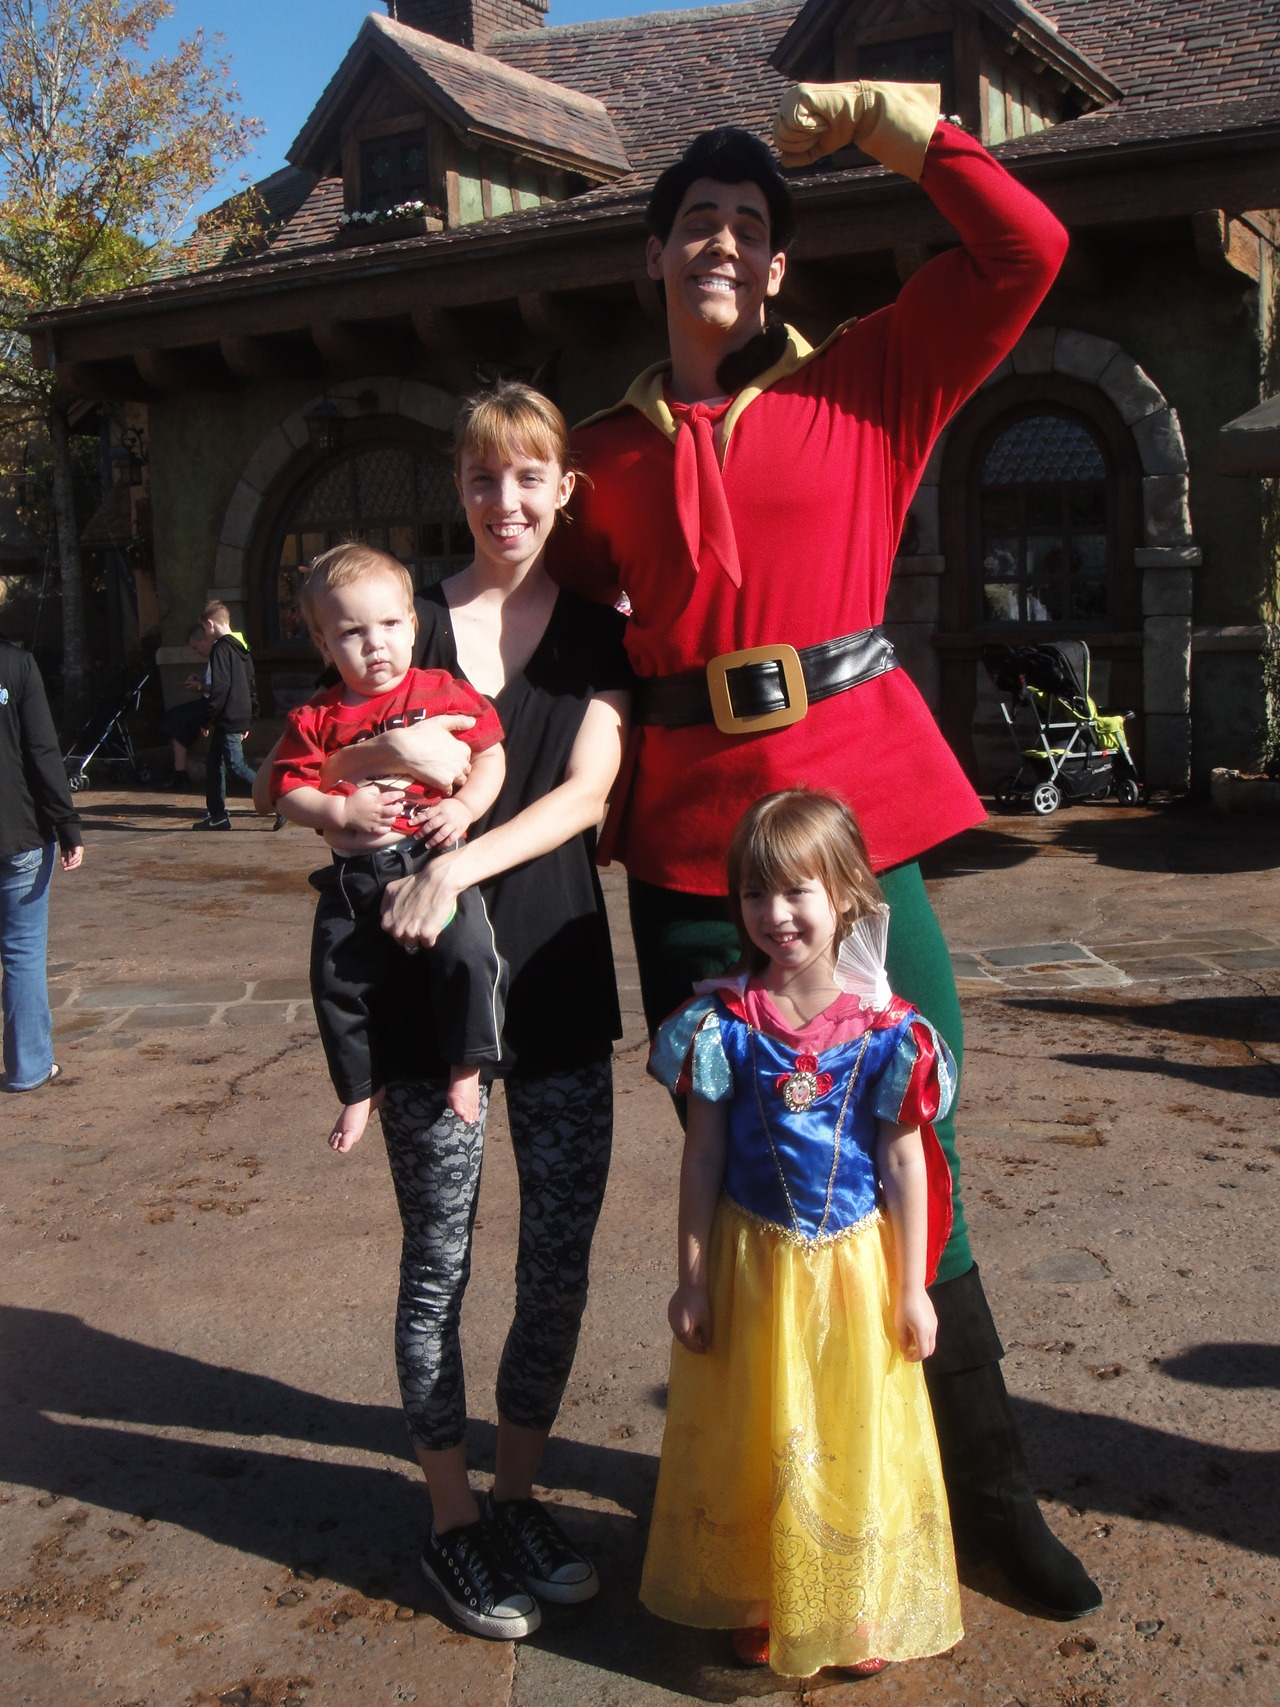 Gaston: Hello princess. And what is your name? My daughter: Iris Gaston: That is a very pretty name, Iris. Want to know an even better name? ….. Gaston